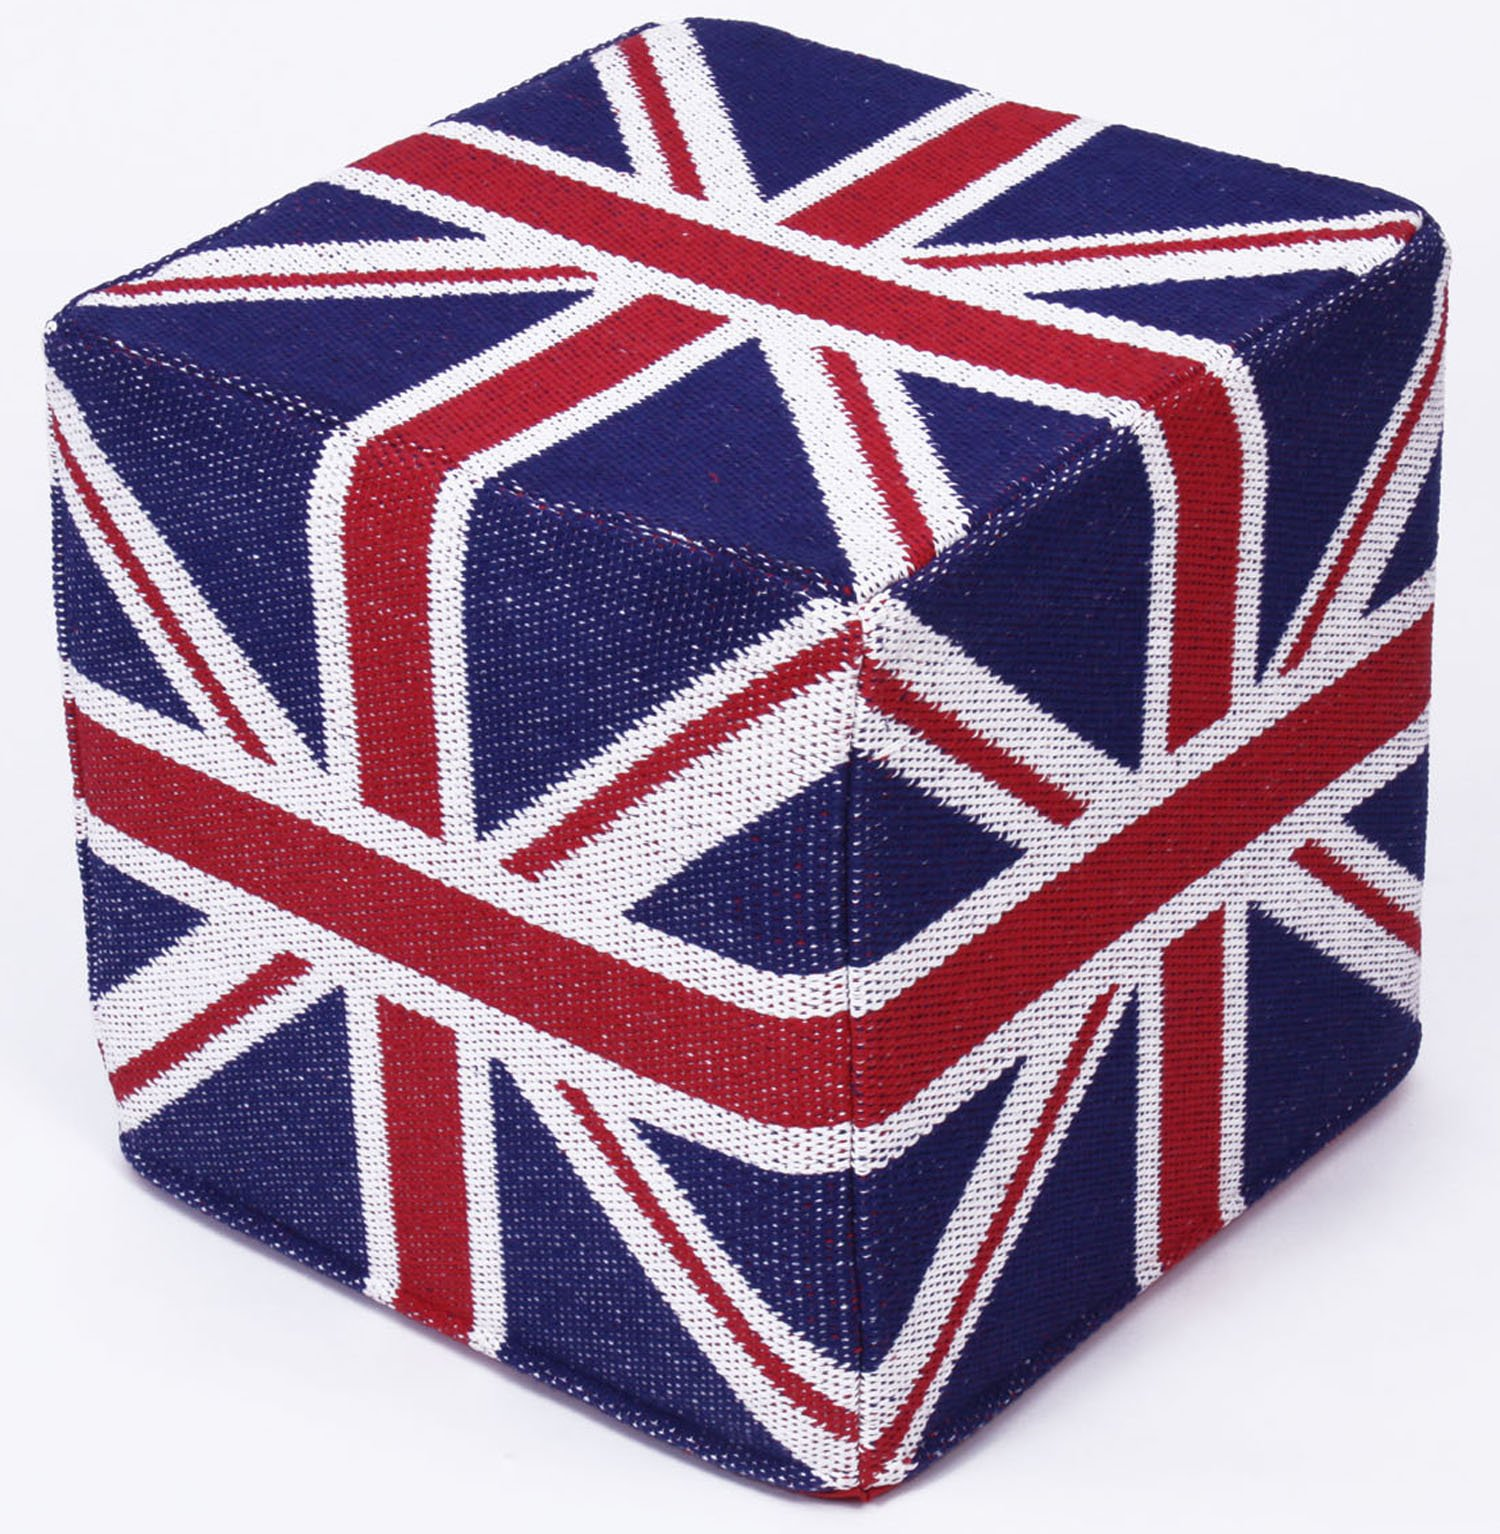 Design Accents Union Jack Hand Woven Pouf, 18-Inch by 18-Inch by 18-Inch, Multicolored